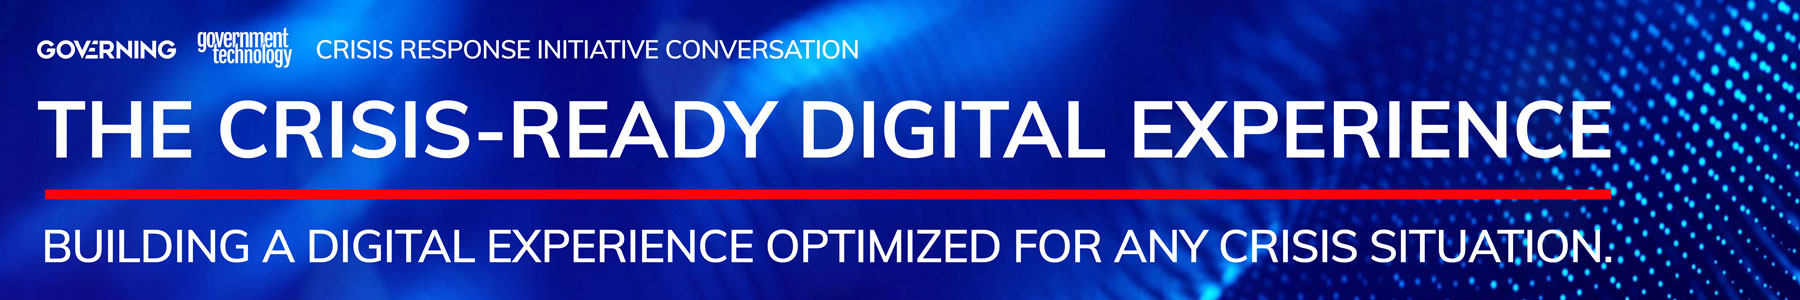 The Crisis-Ready Digital Experience - Building a digital experience optimized for any crisis situation